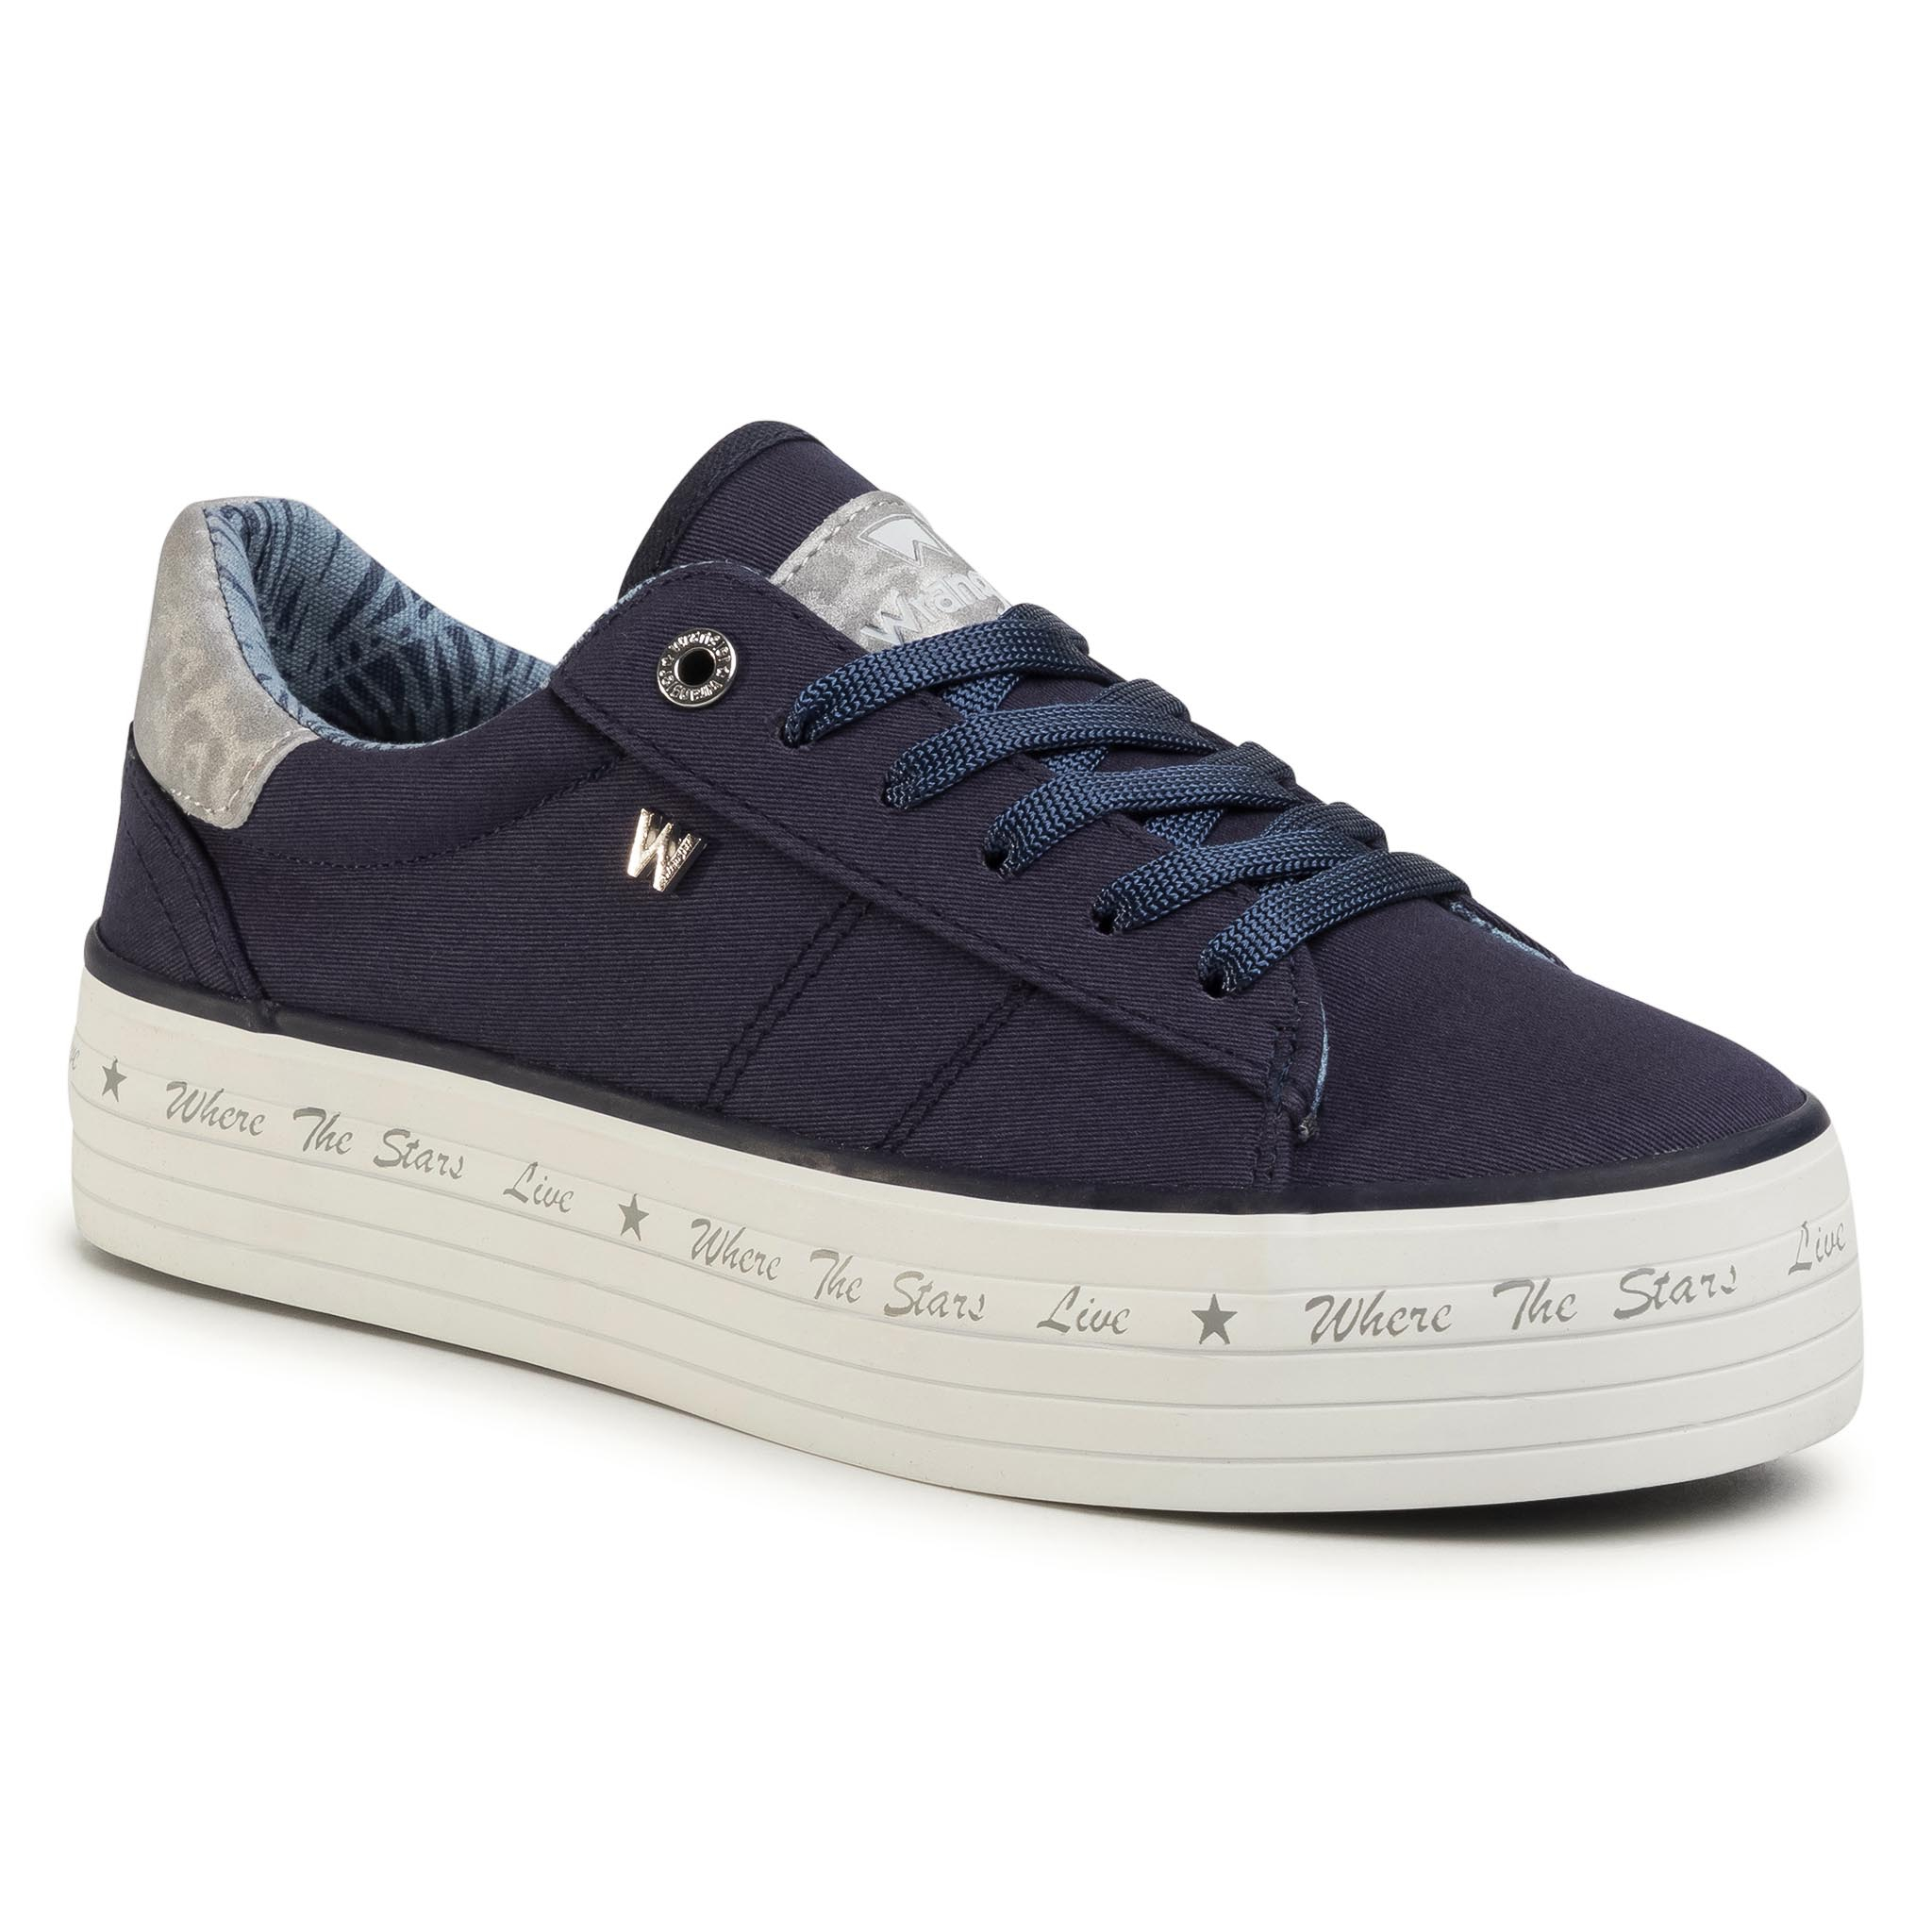 Teniși Wrangler - Java Wl01645a Navy 016 imagine epantofi.ro 2021